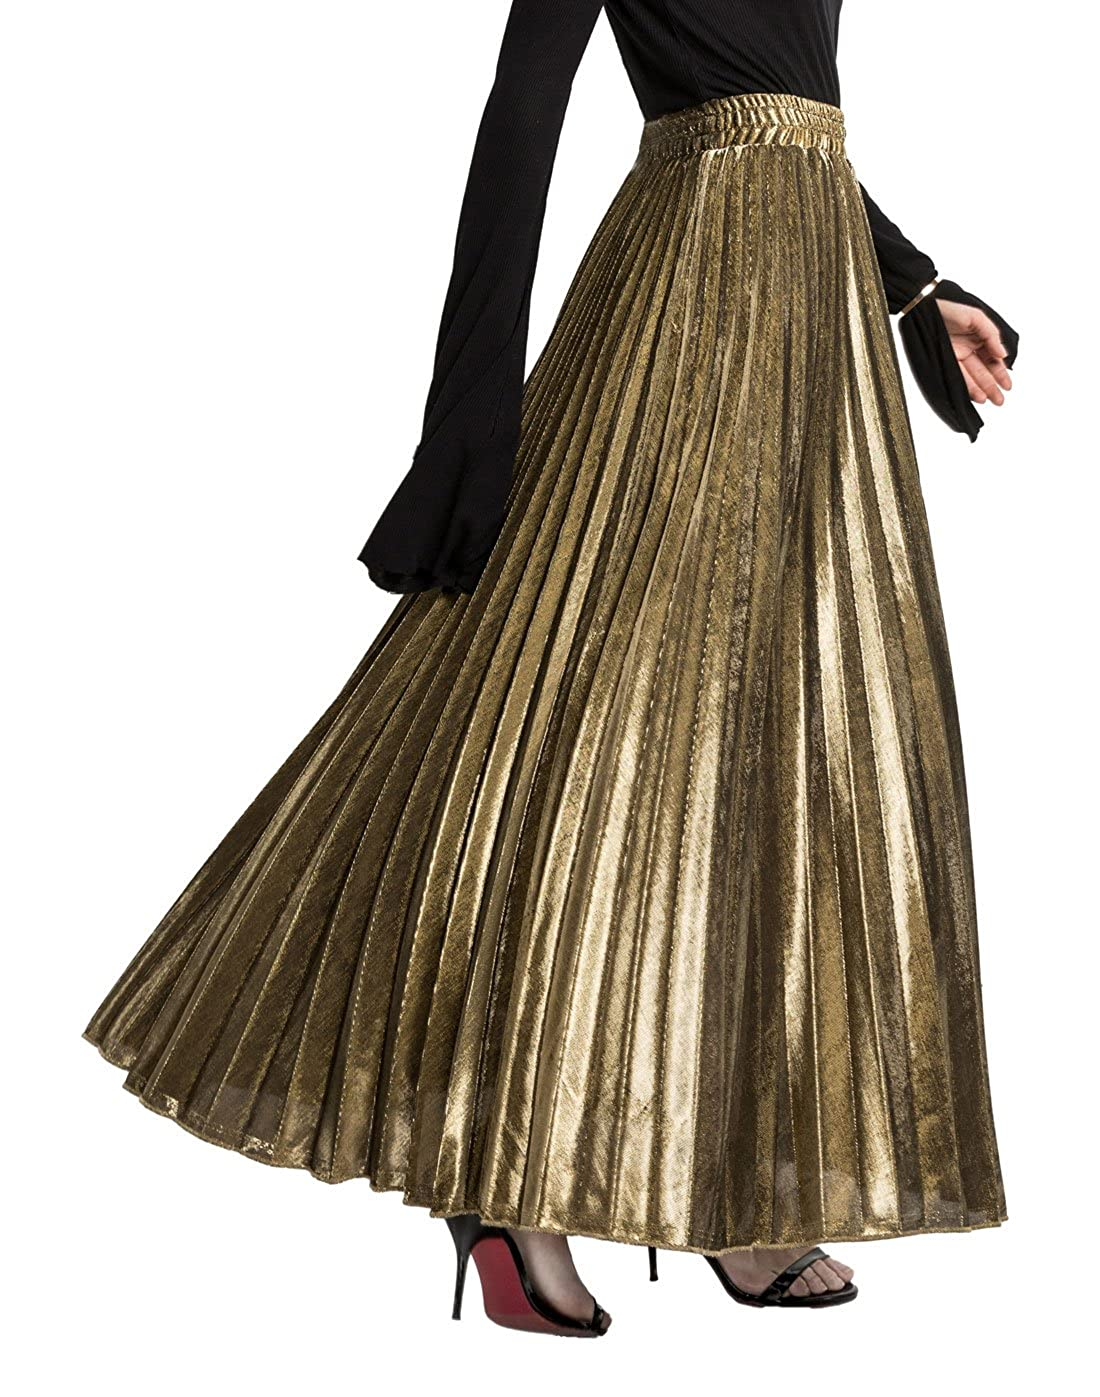 c7df67a47 Imported Stretched high waist, Pull on closure. Shiny metallic long maxi  beach skirt with pleats. Solid color: gold, silver, black, blue, red